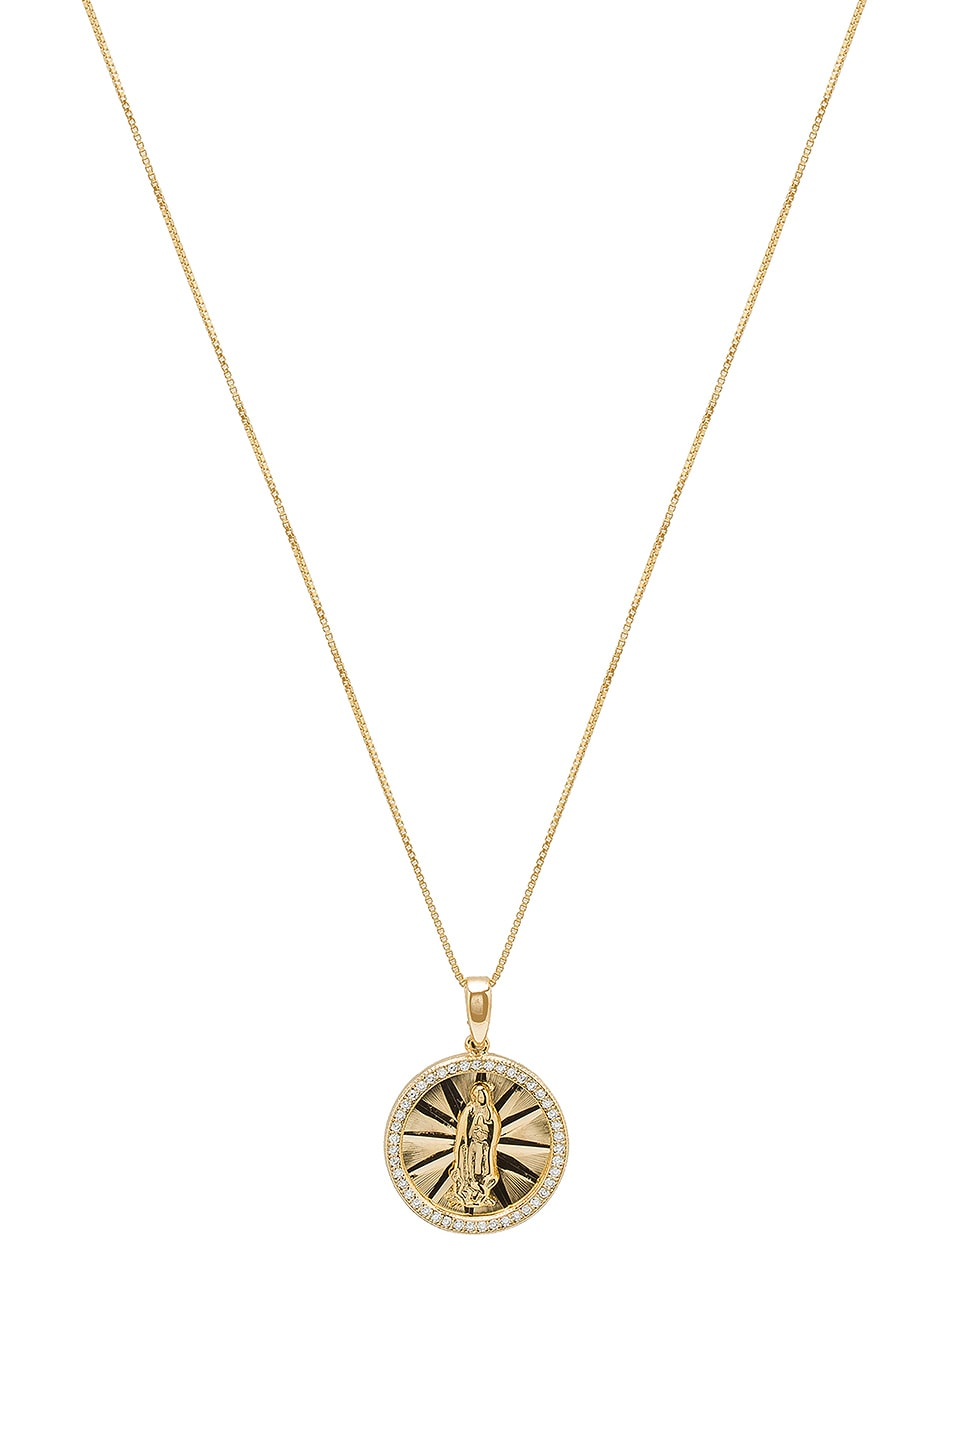 THE M JEWELERS NY THE PAVE CIRCLE GUADALUPE PENDANT NECKLACE